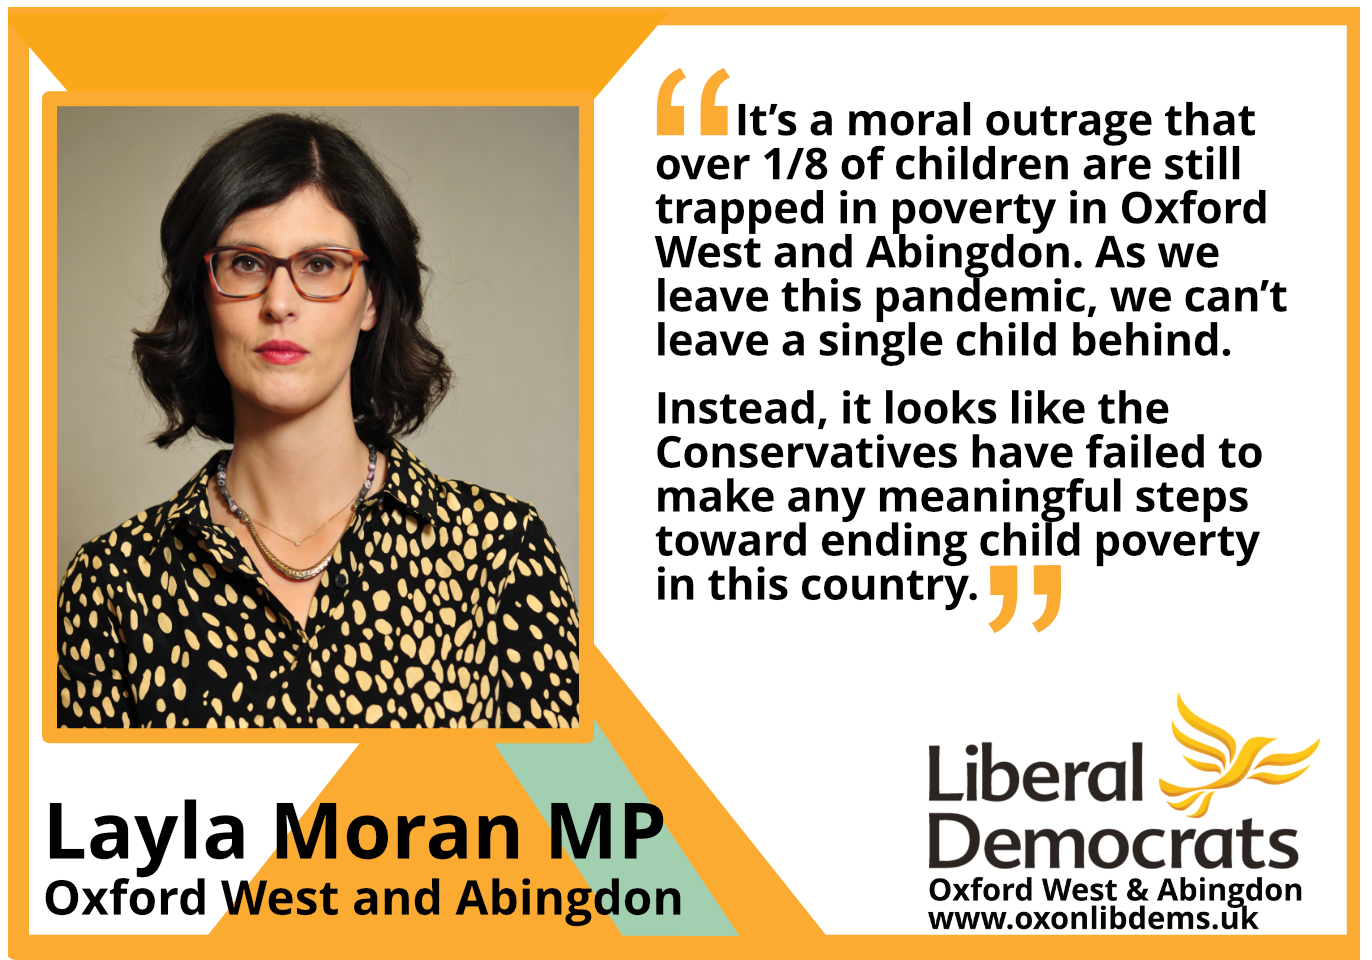 It's a moral outrage that over 1/8 of children are still trapped in poverty in Oxford West and Abingdon. As we leave this pandemic, we can't leave a single child behind. Instead, it looks like the Conservatives have failed to make any meaningful steps toward ending child poverty in this country.